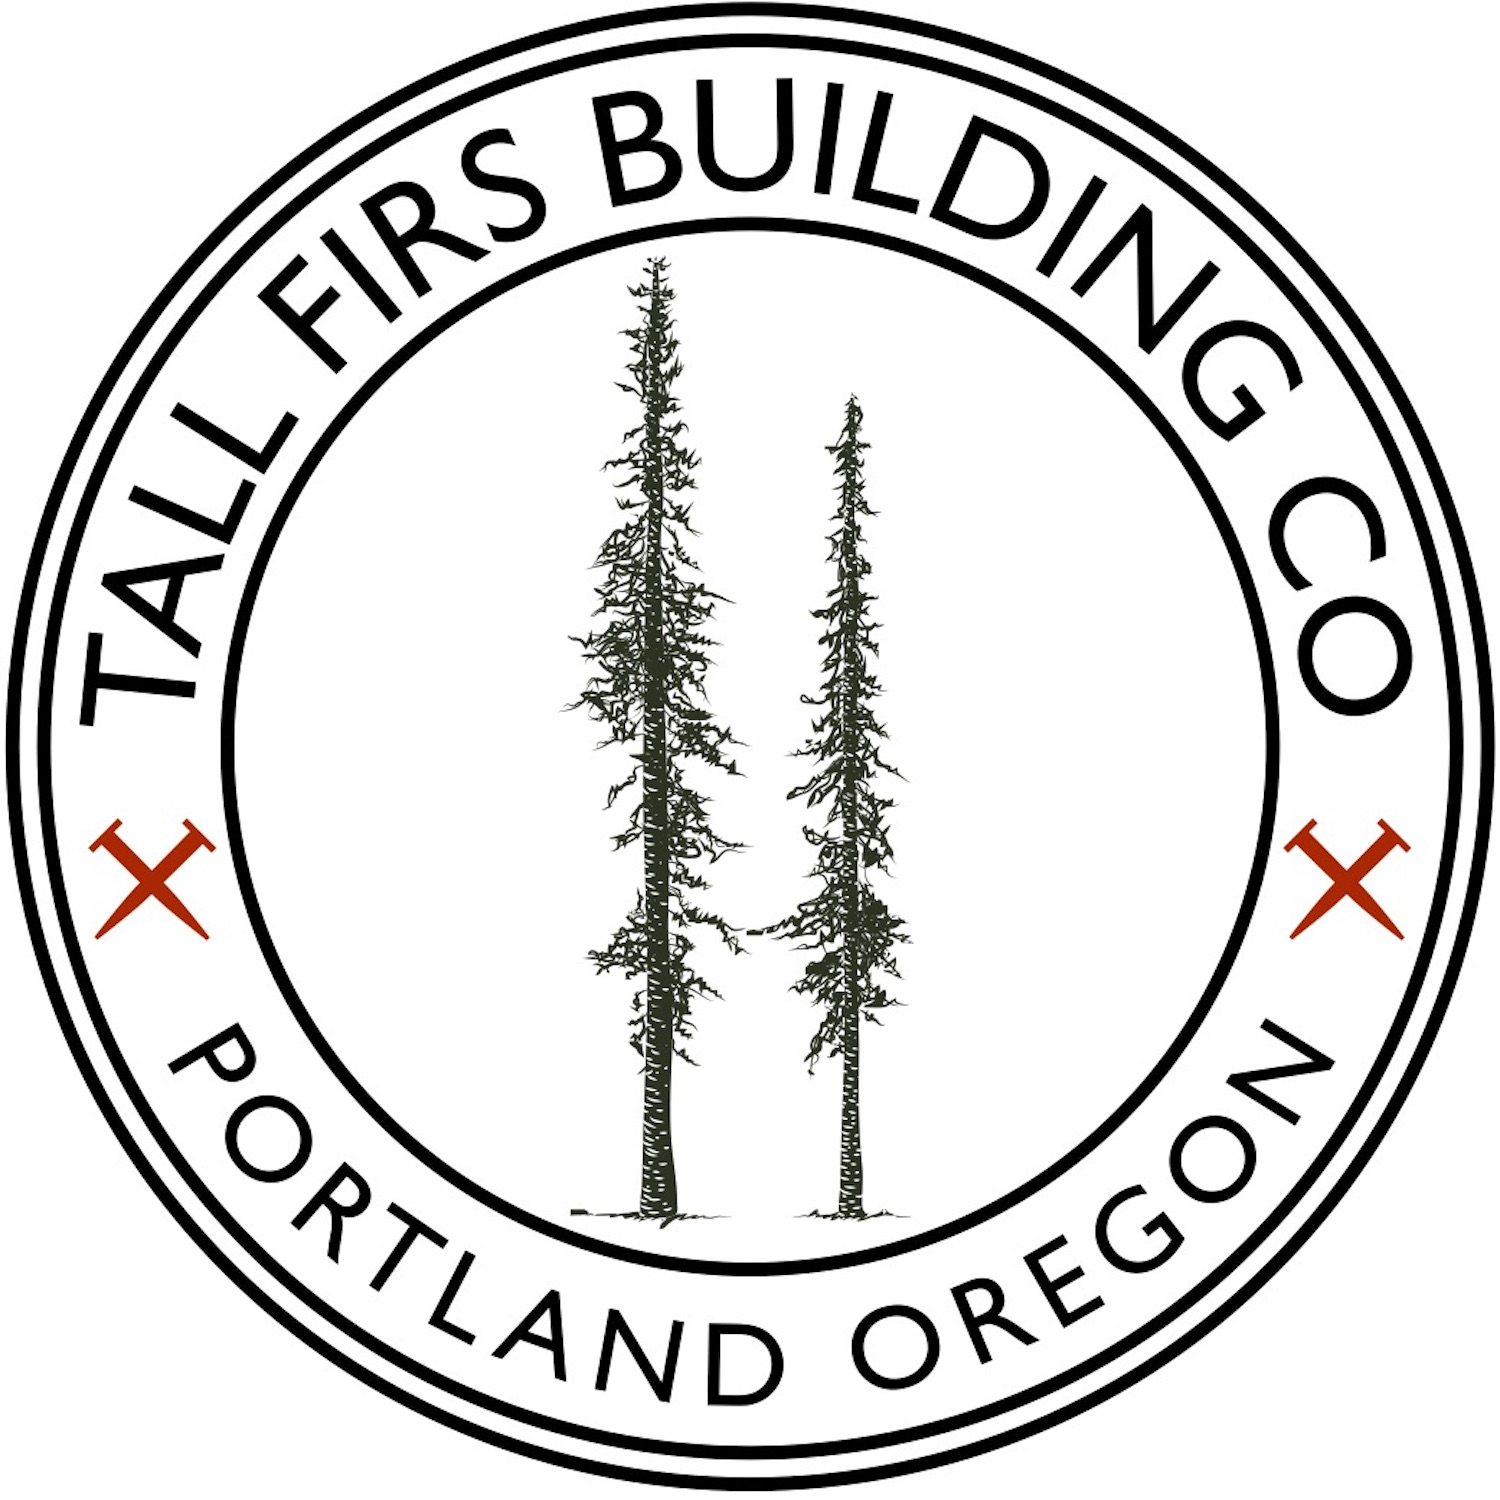 Tall Firs Building Company